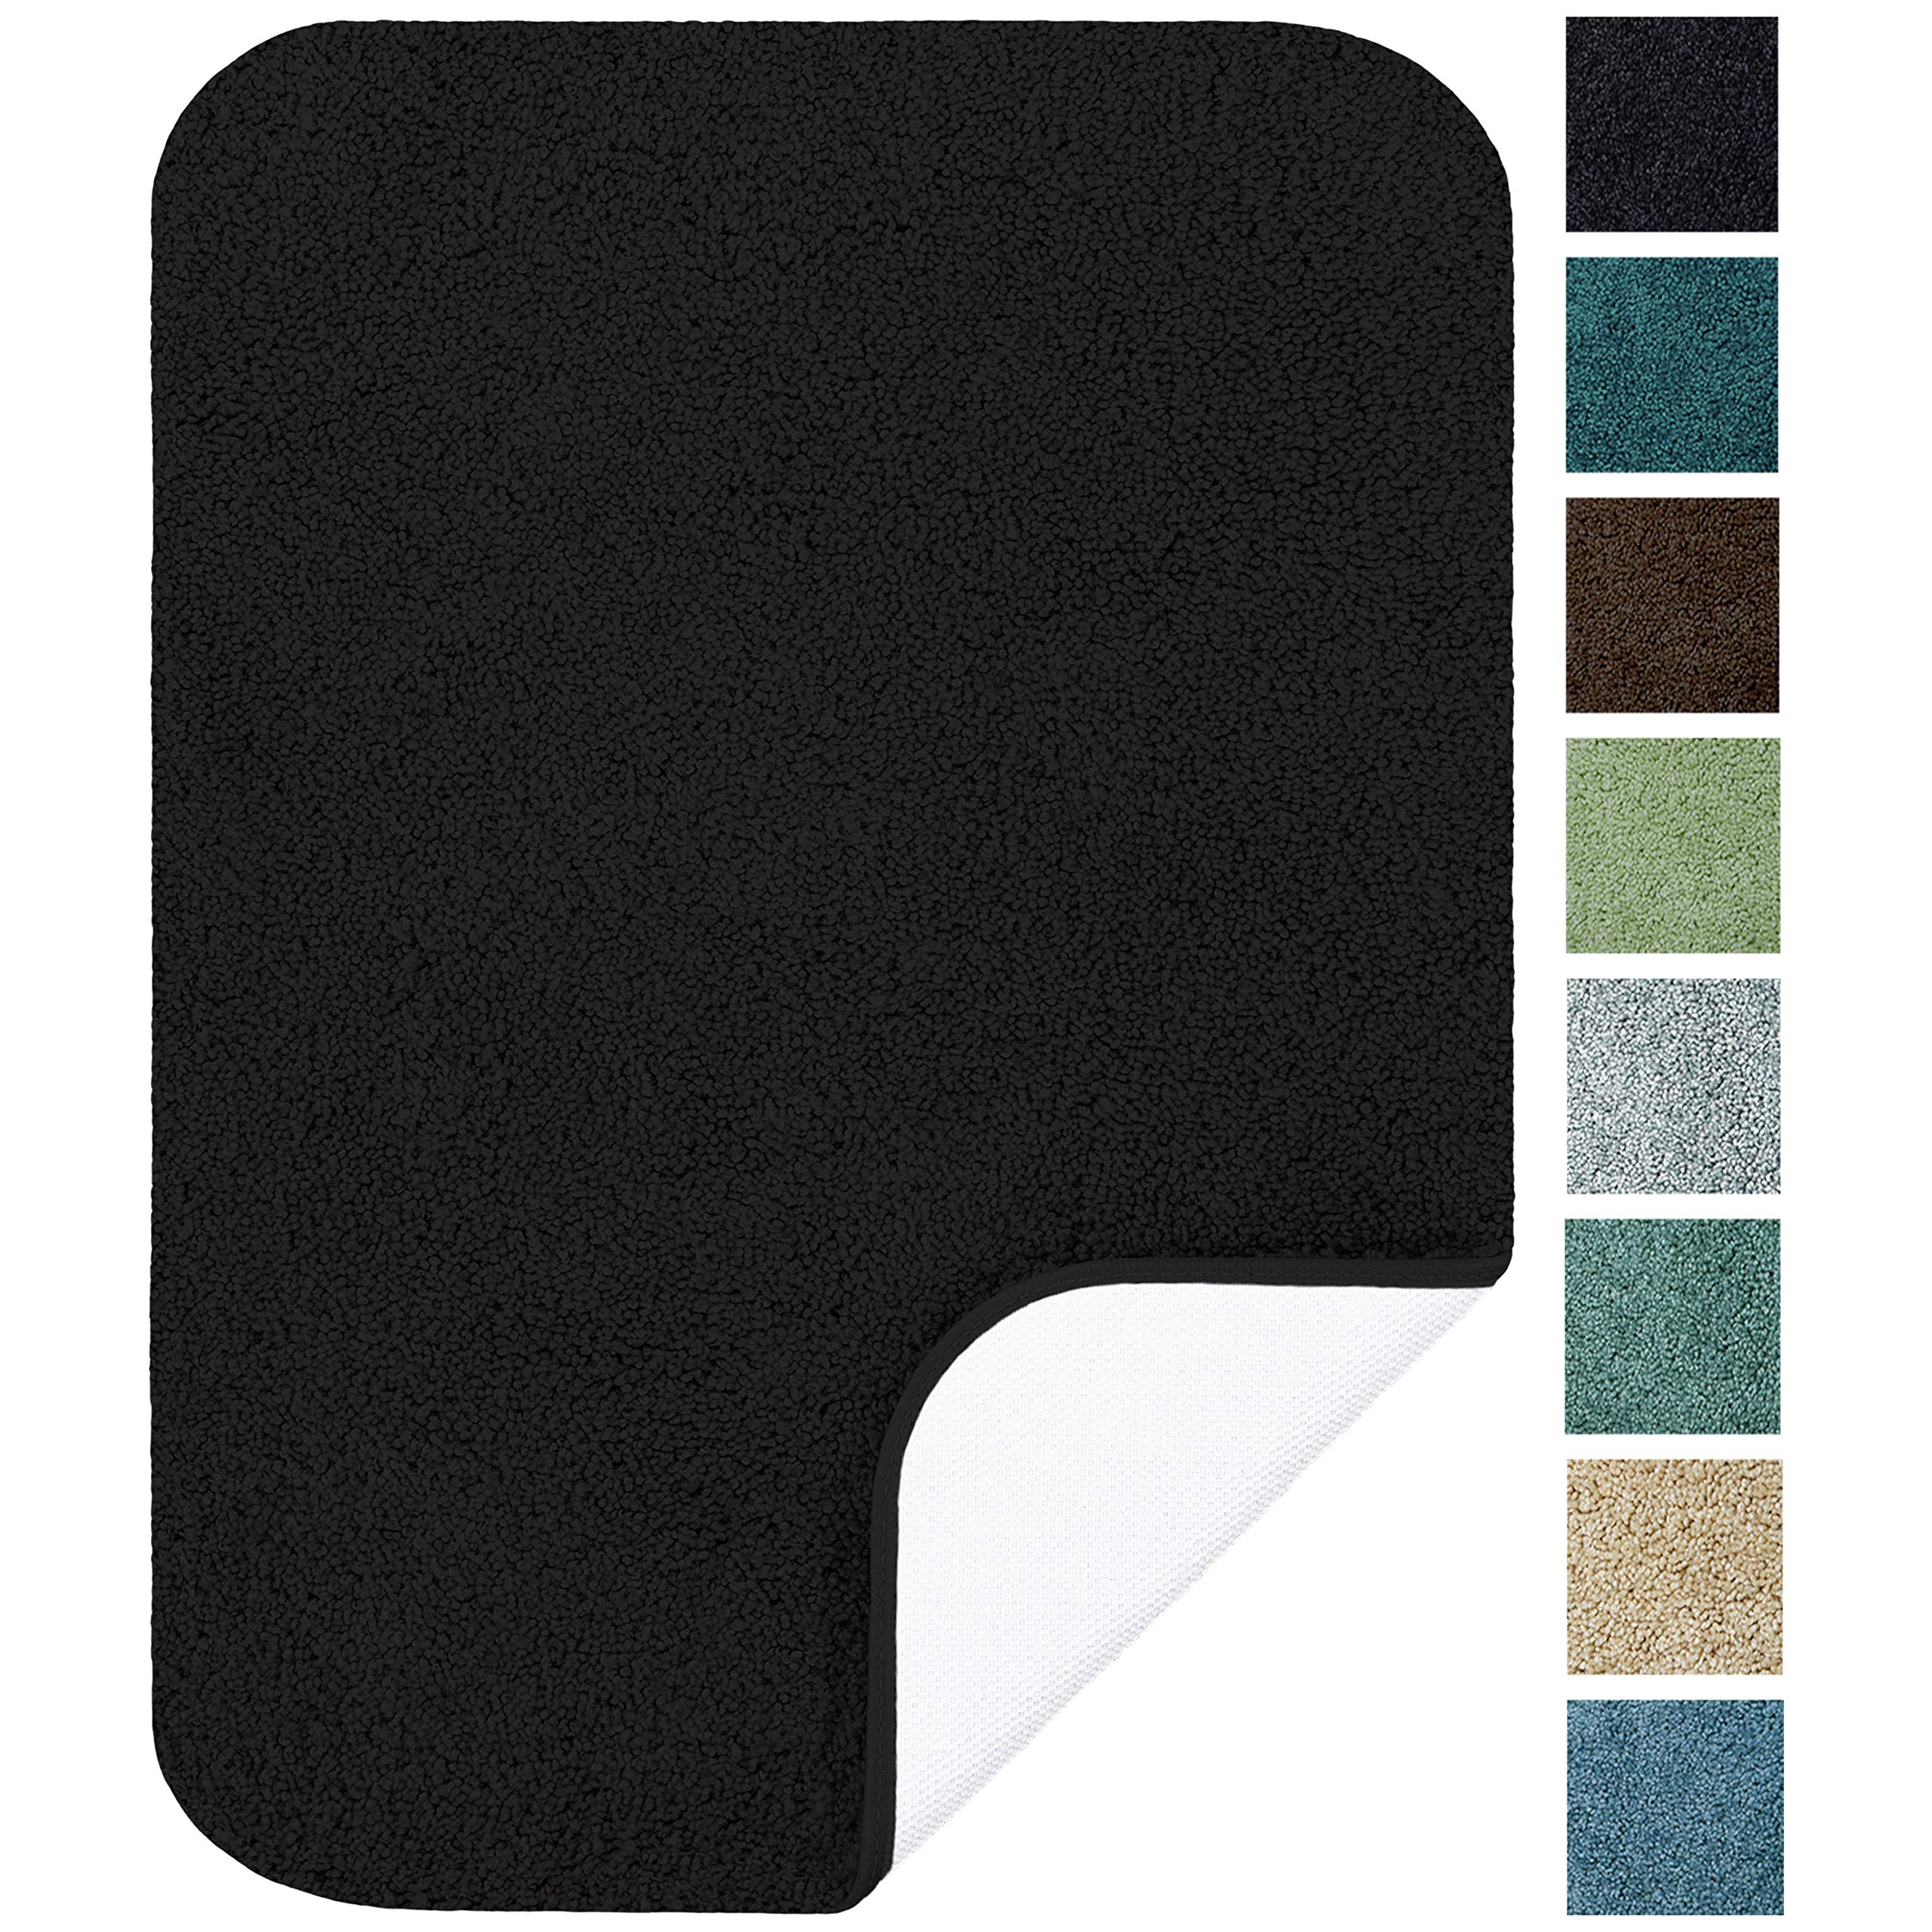 Maples Rugs Bathroom Rugs - SofTec 17'' x 24'' Non Slip Washable Bath Mat [Made in USA] Soft & Quick Dry for Vanity and Shower, Black